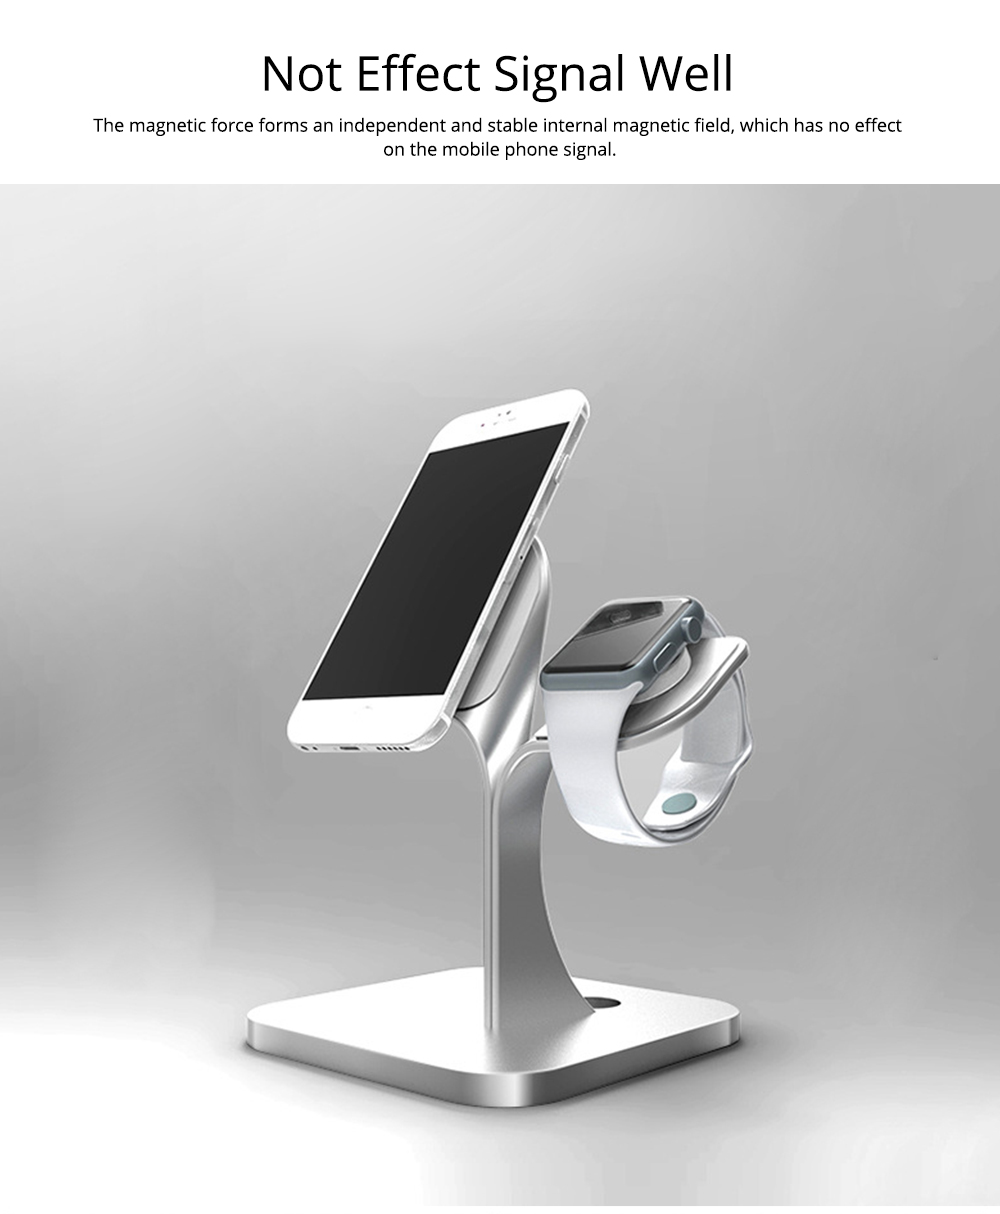 Mobile Phone Stand iwatch Charging Base, Aluminum Alloy Mobile Phone Display Stand Base Universal 7